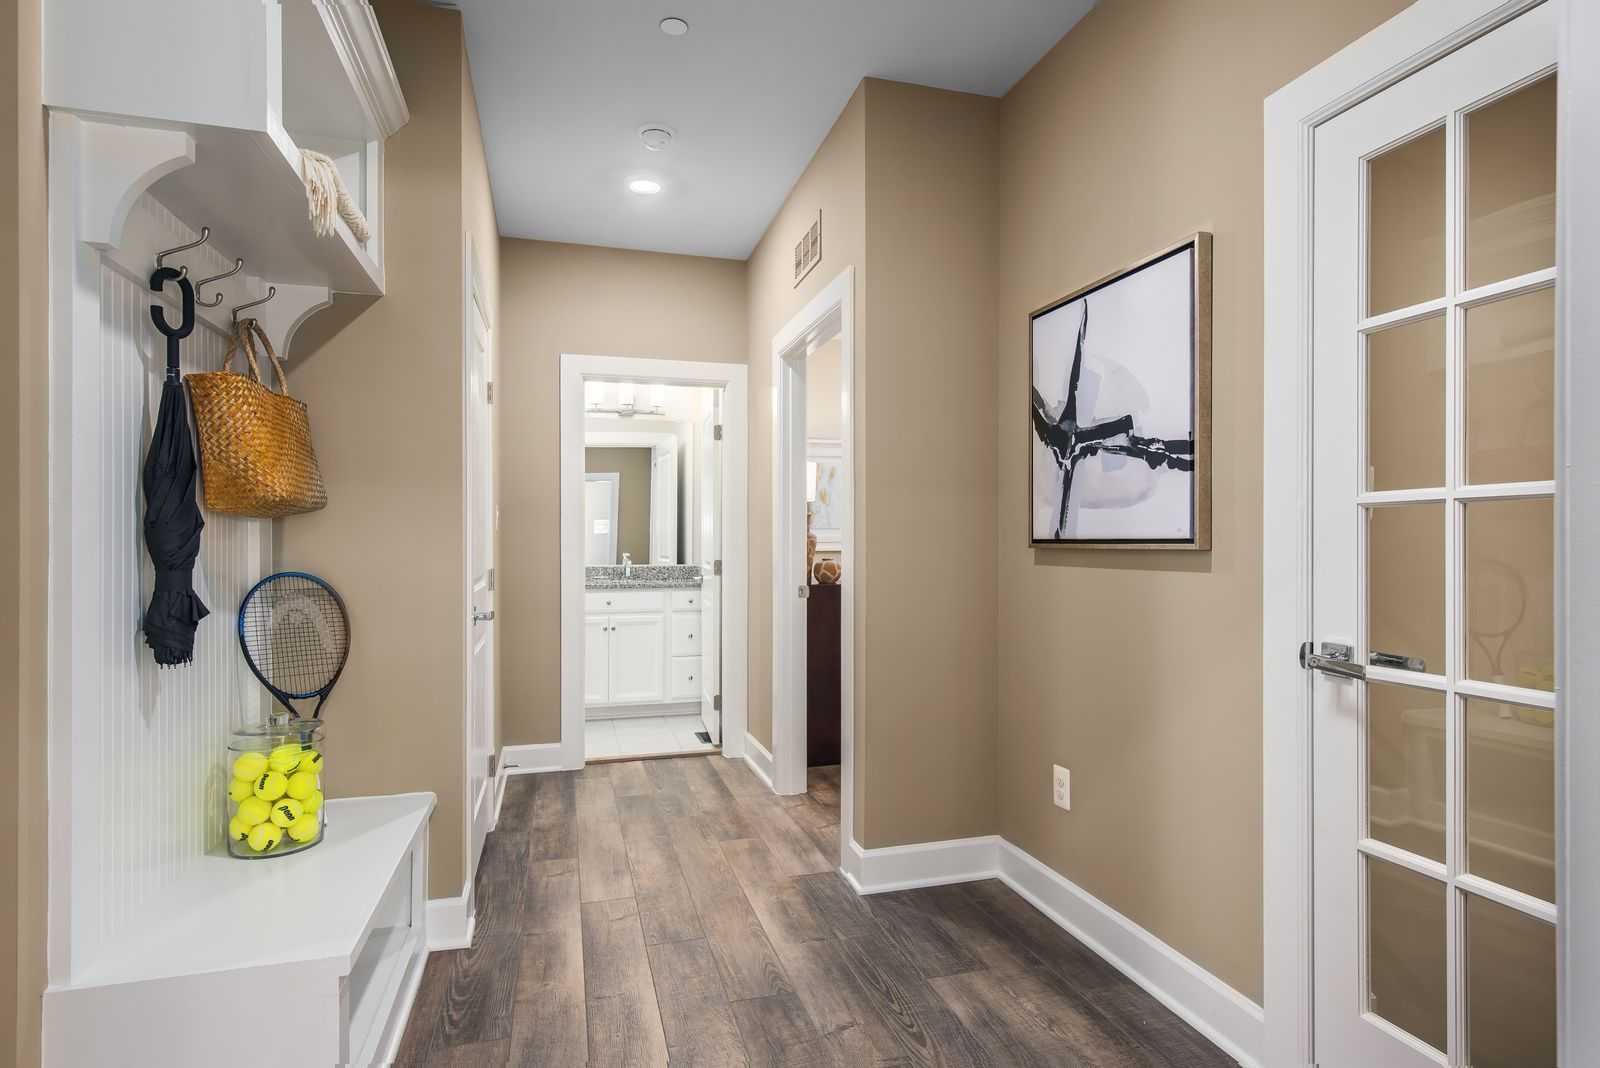 '55+ Active Adult The Woodlands Single-Family Homes' by NVHomes-MDW in Washington